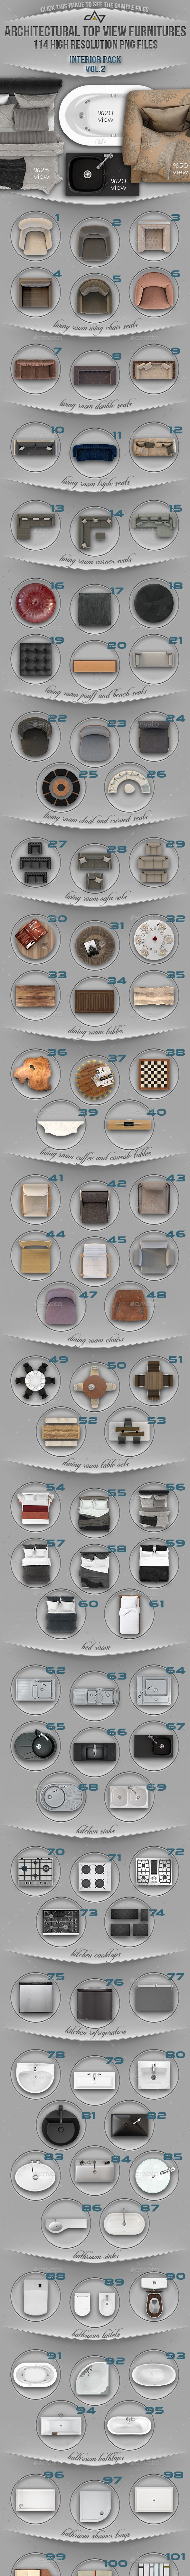 114 Top View Furnitures for 3D Floor Plans Vol 2 - Miscellaneous Product Mock-Ups